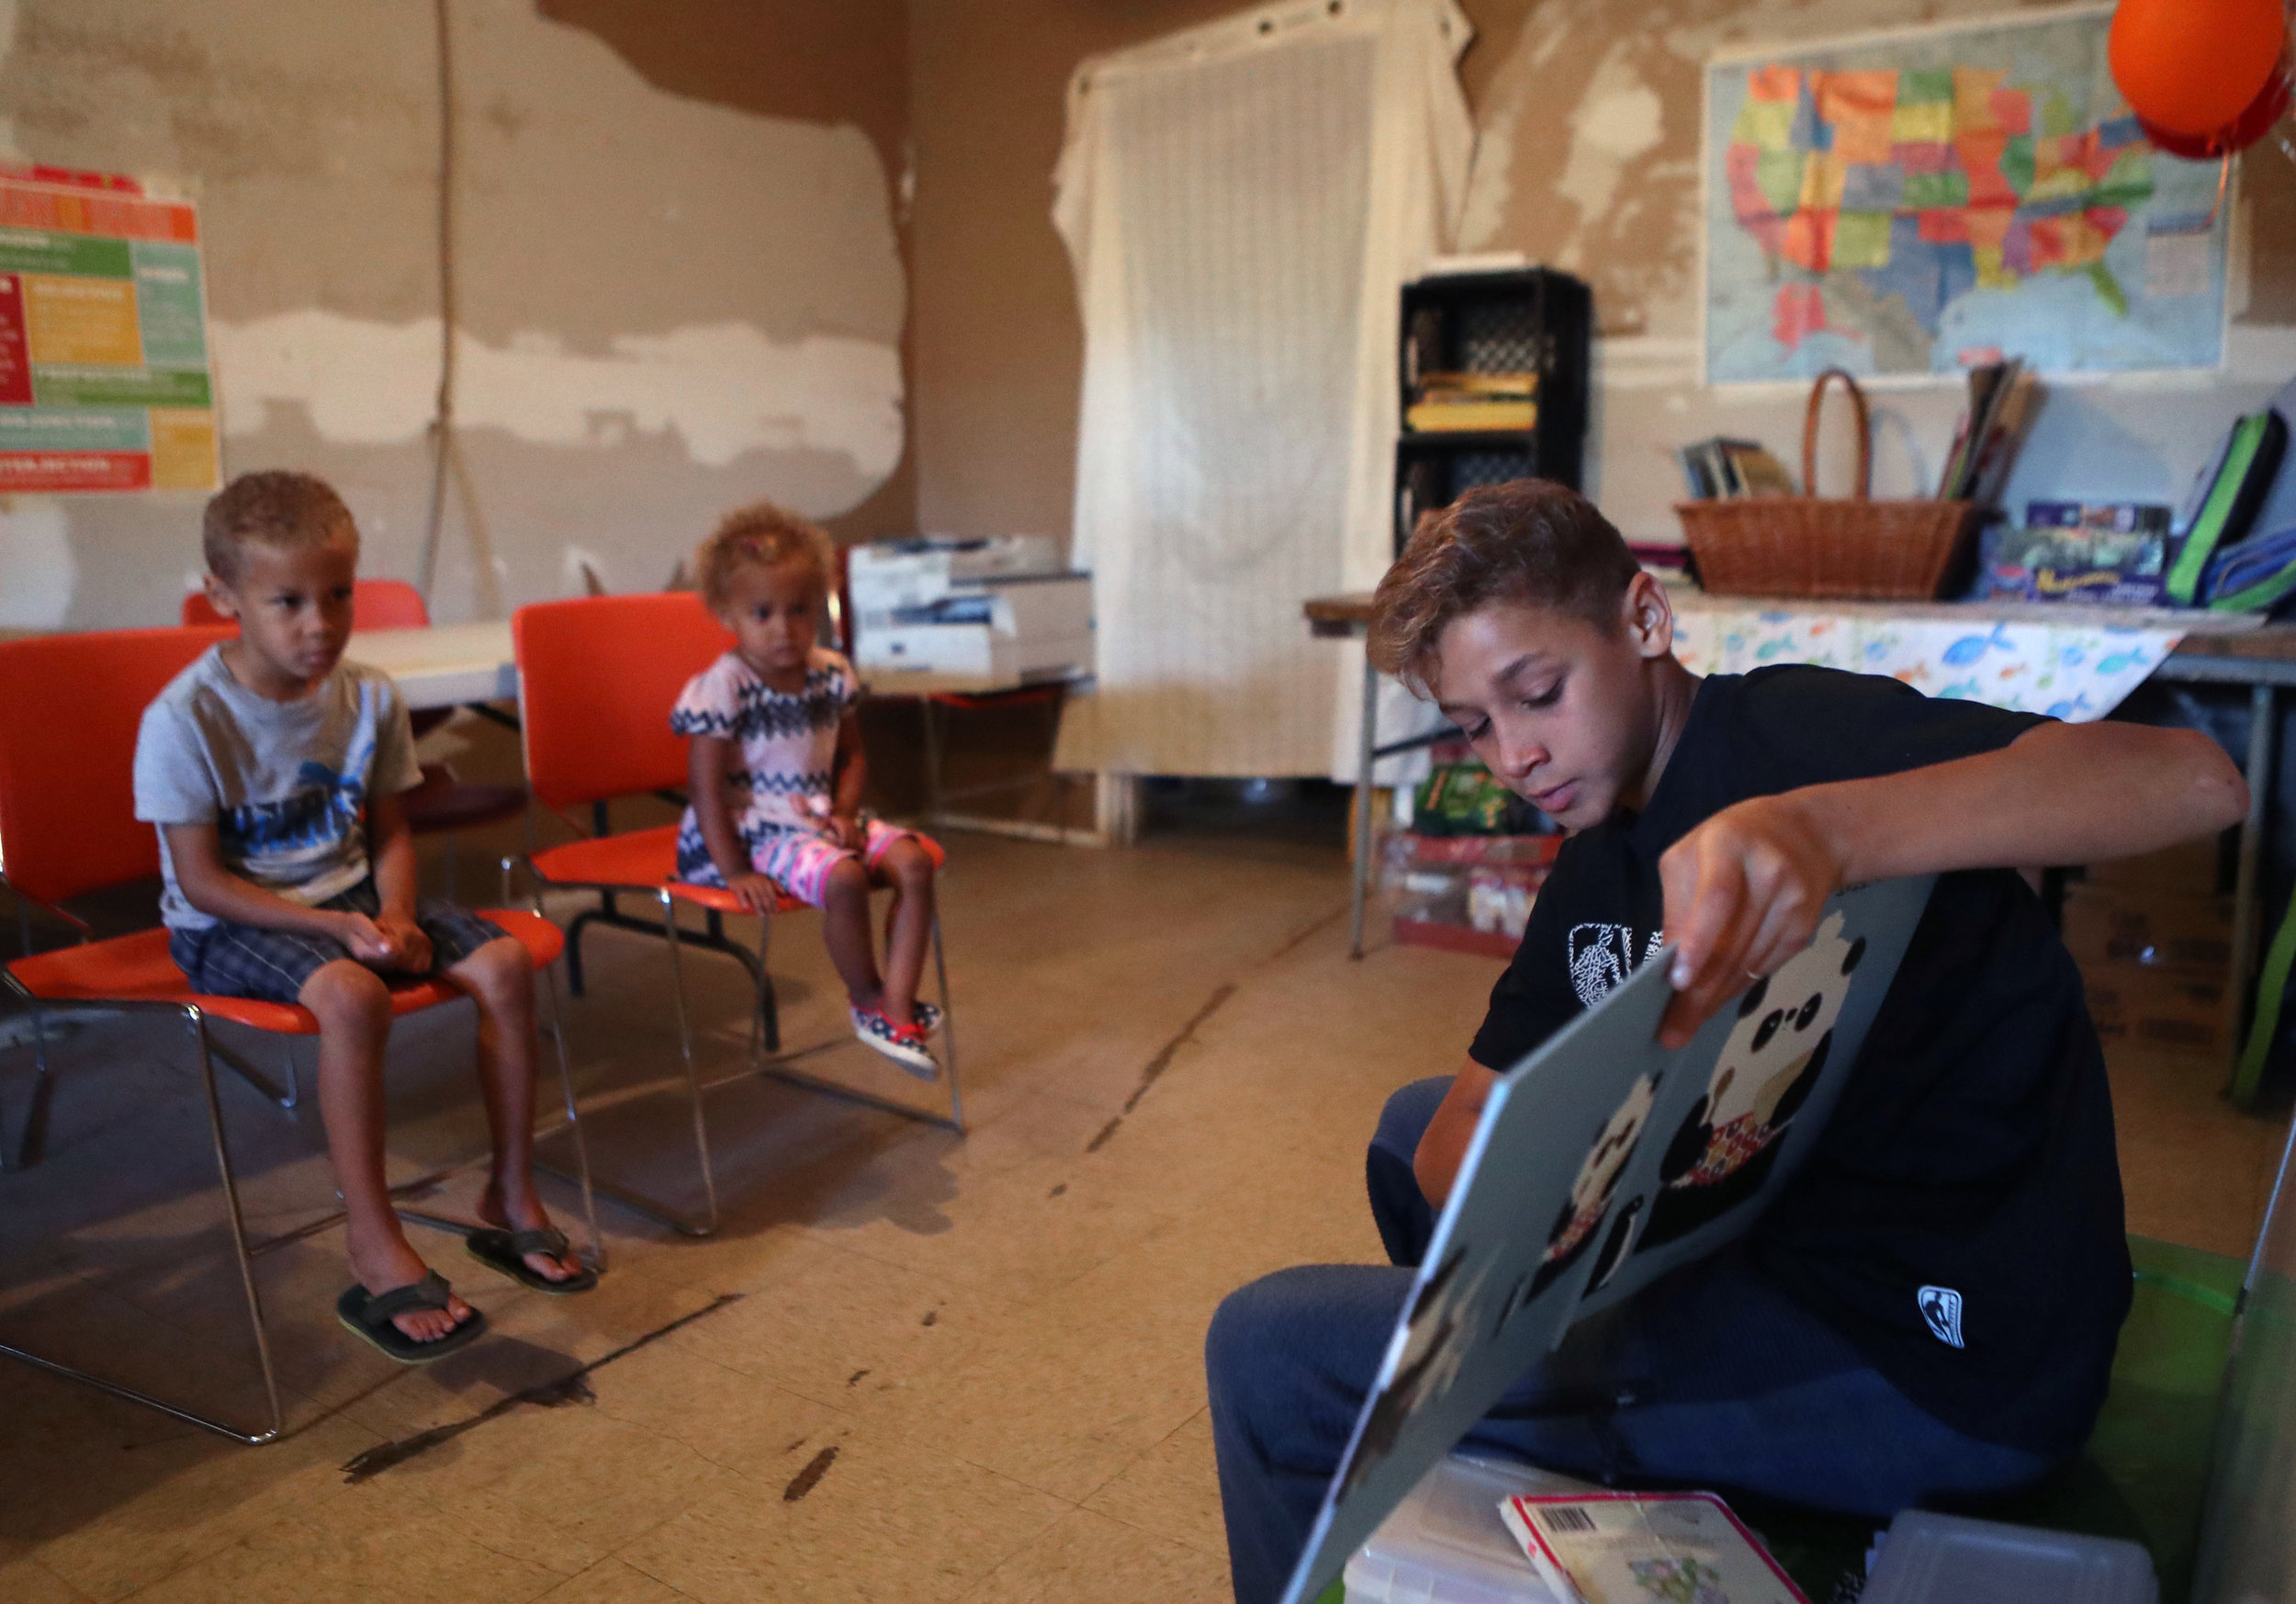 Kemuel White reads to his siblings, Kaleb and Kendra, during home school on Thursday, May 10, 2018. The children are homeschooled in a room at the back of the café. Many of the older children help their younger siblings while educating themselves with a plethora of books and worksheets.